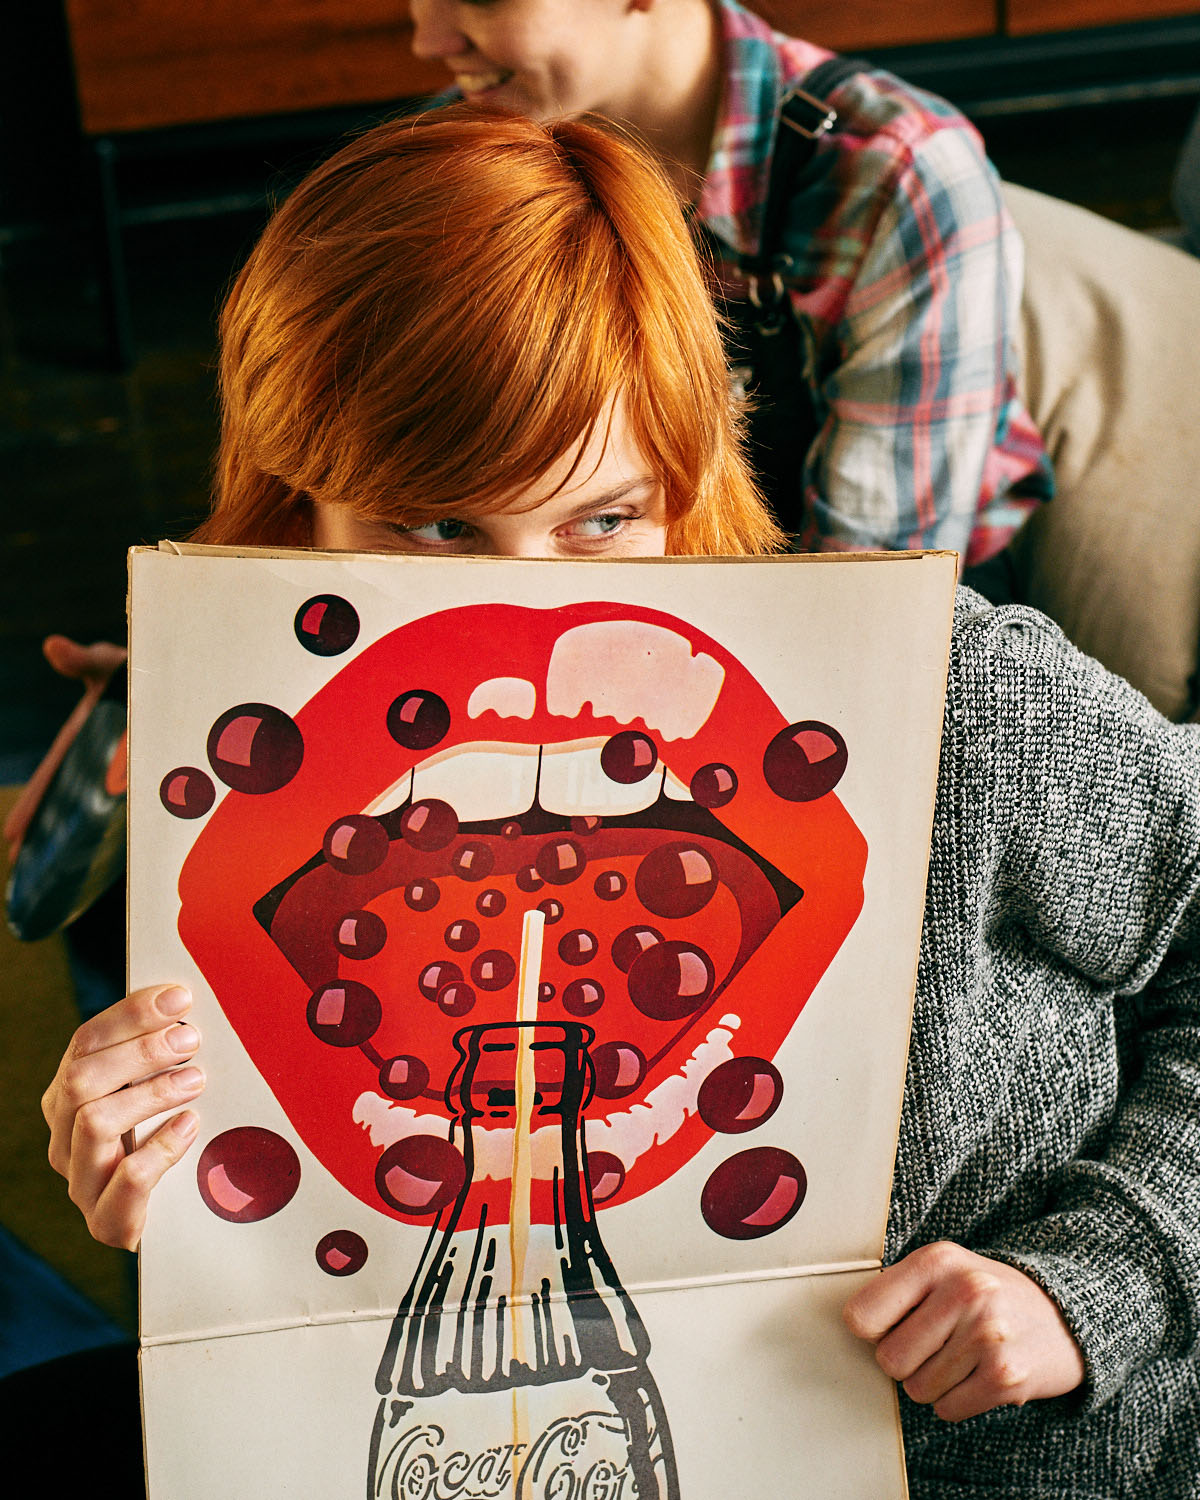 Teenage girl, red hair holds up vinyl album illustrated lips, by lifestyle photographer Tim Cole